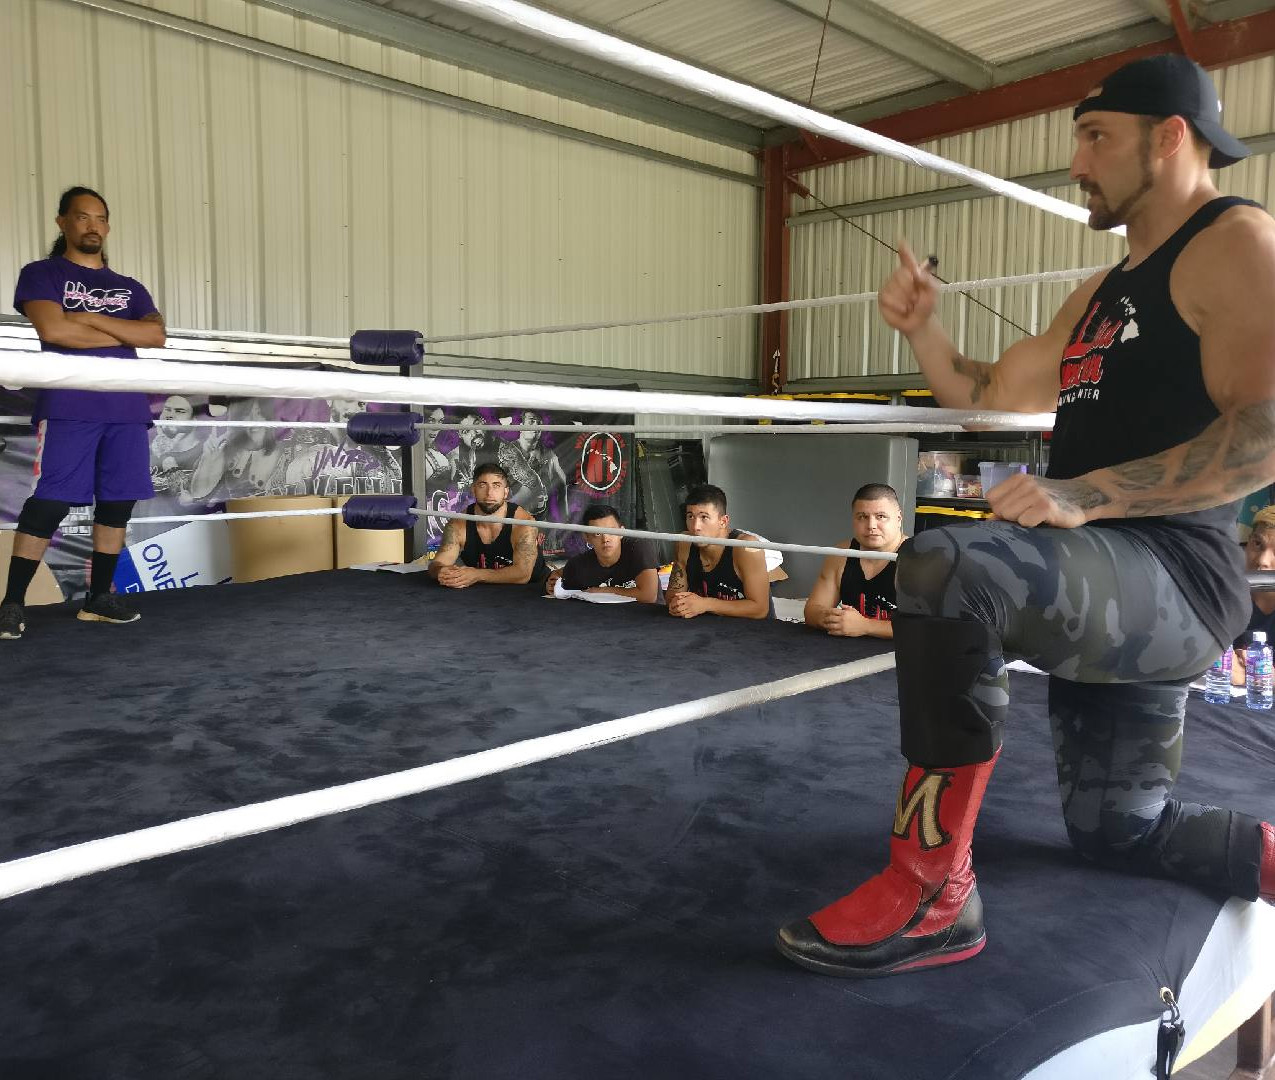 Wrestling Seminar with Chris Masters